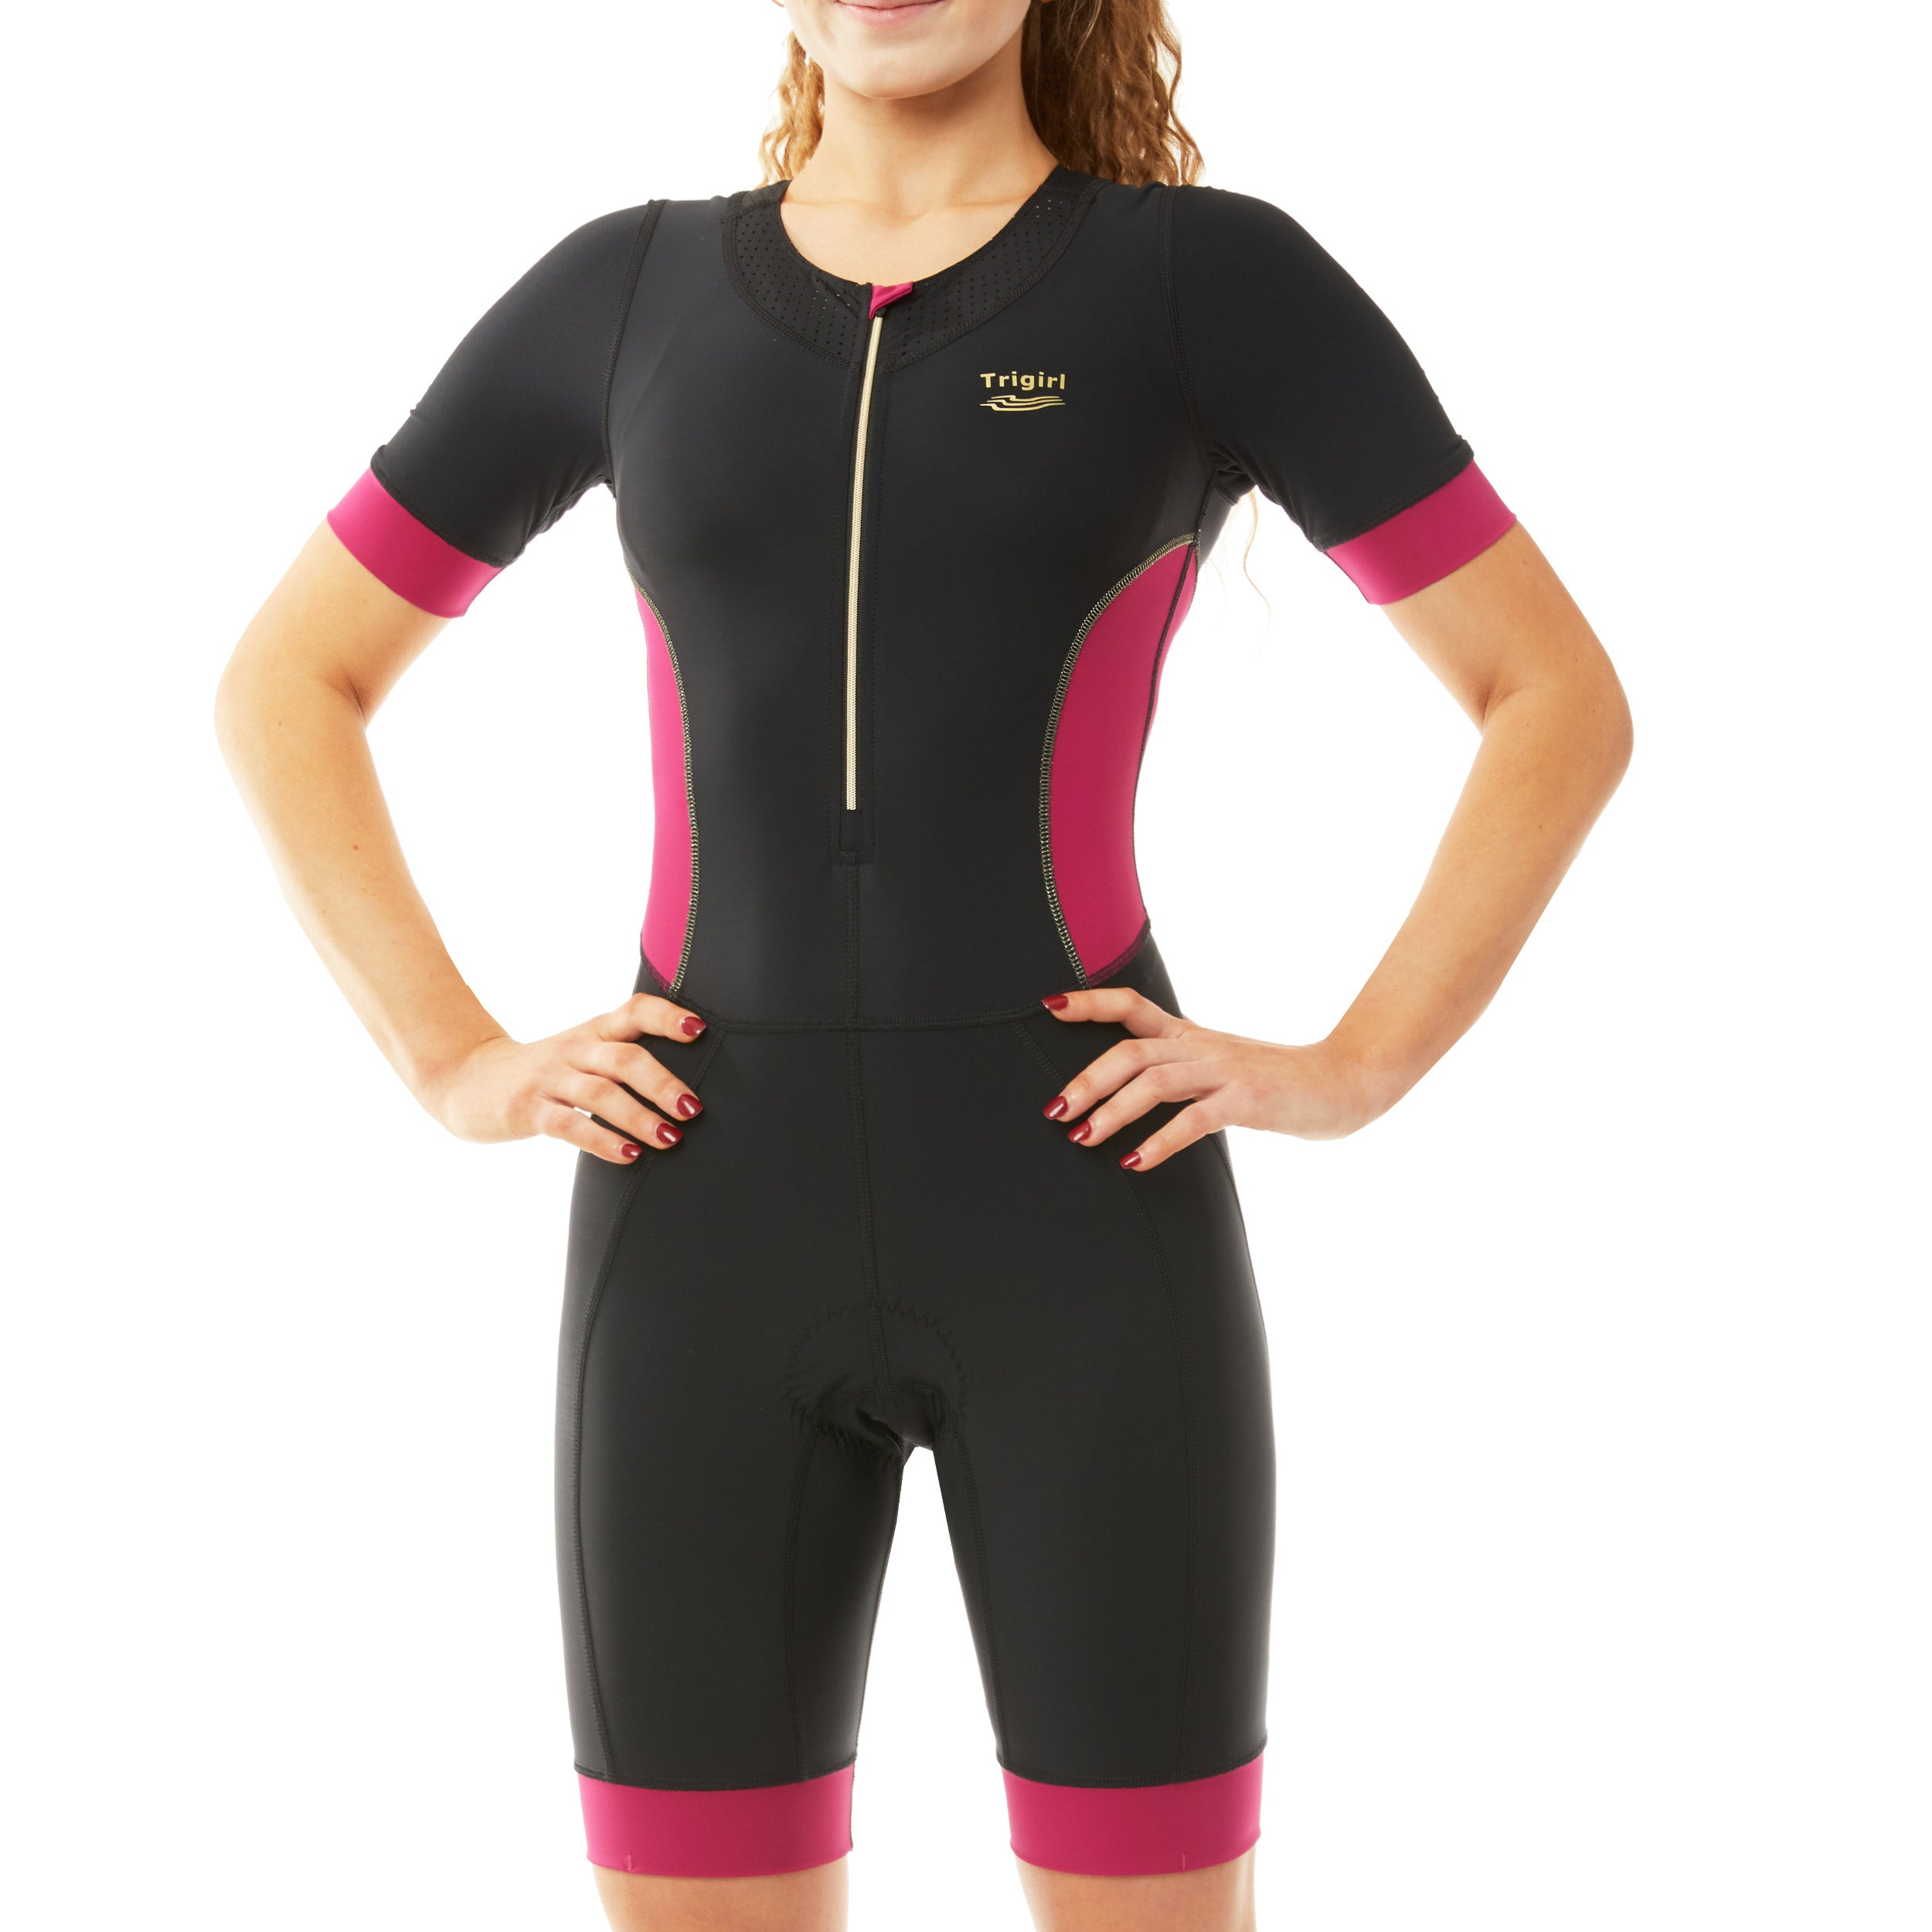 Star Trisuit with/ without Support in Persia Petunia